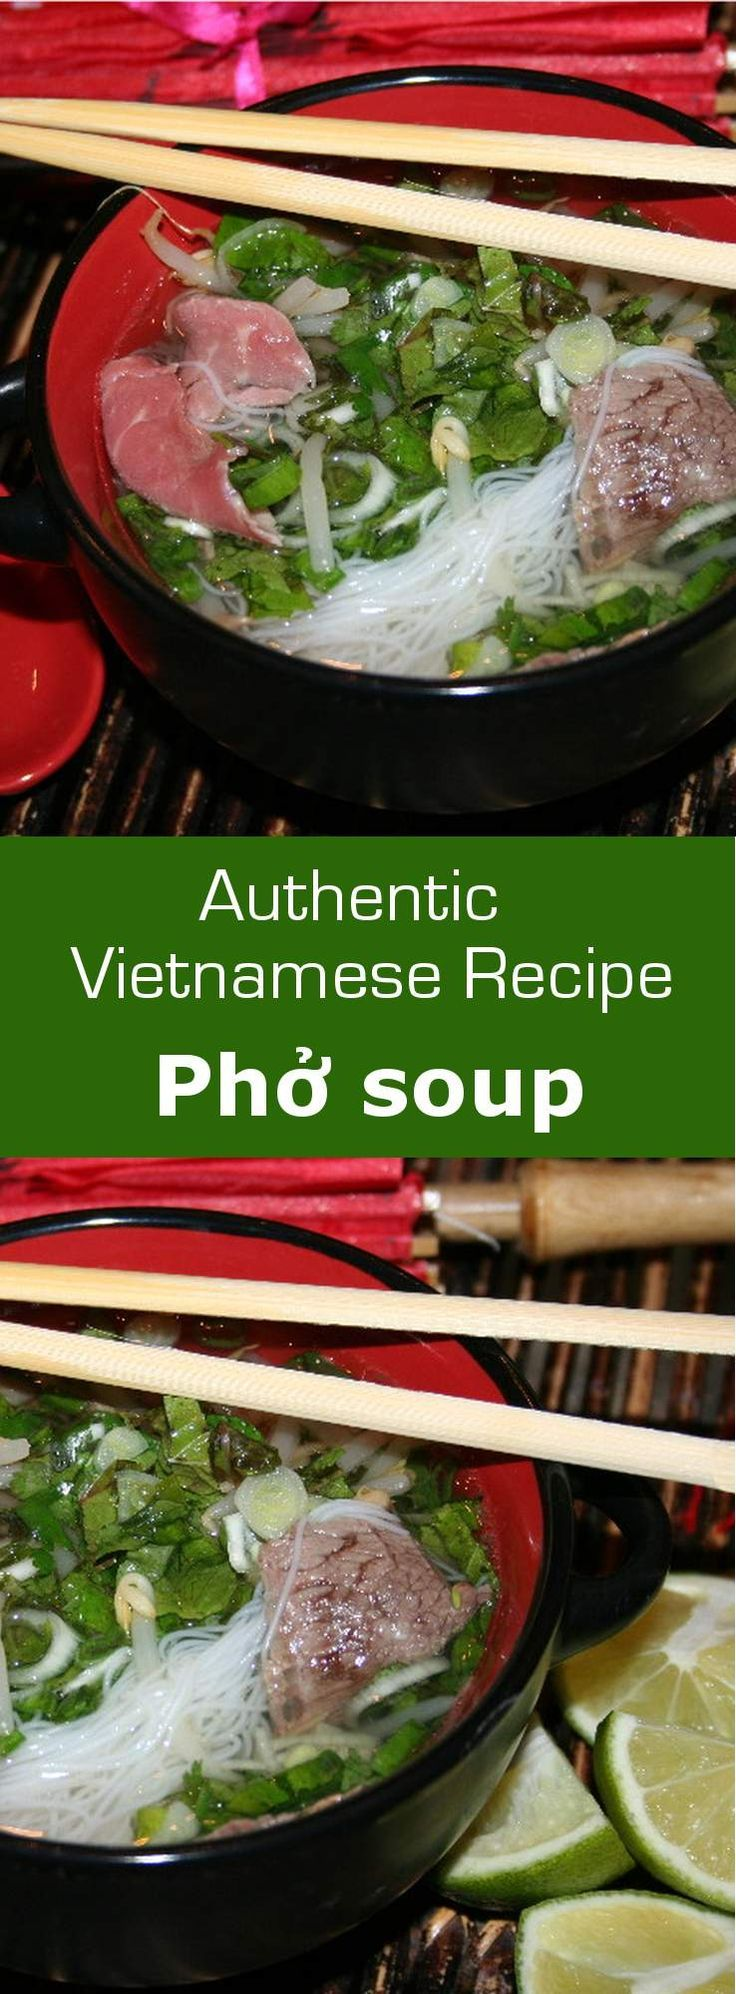 1000+ images about Vietnamese Food Recipes on Pinterest | Vietnamese ...